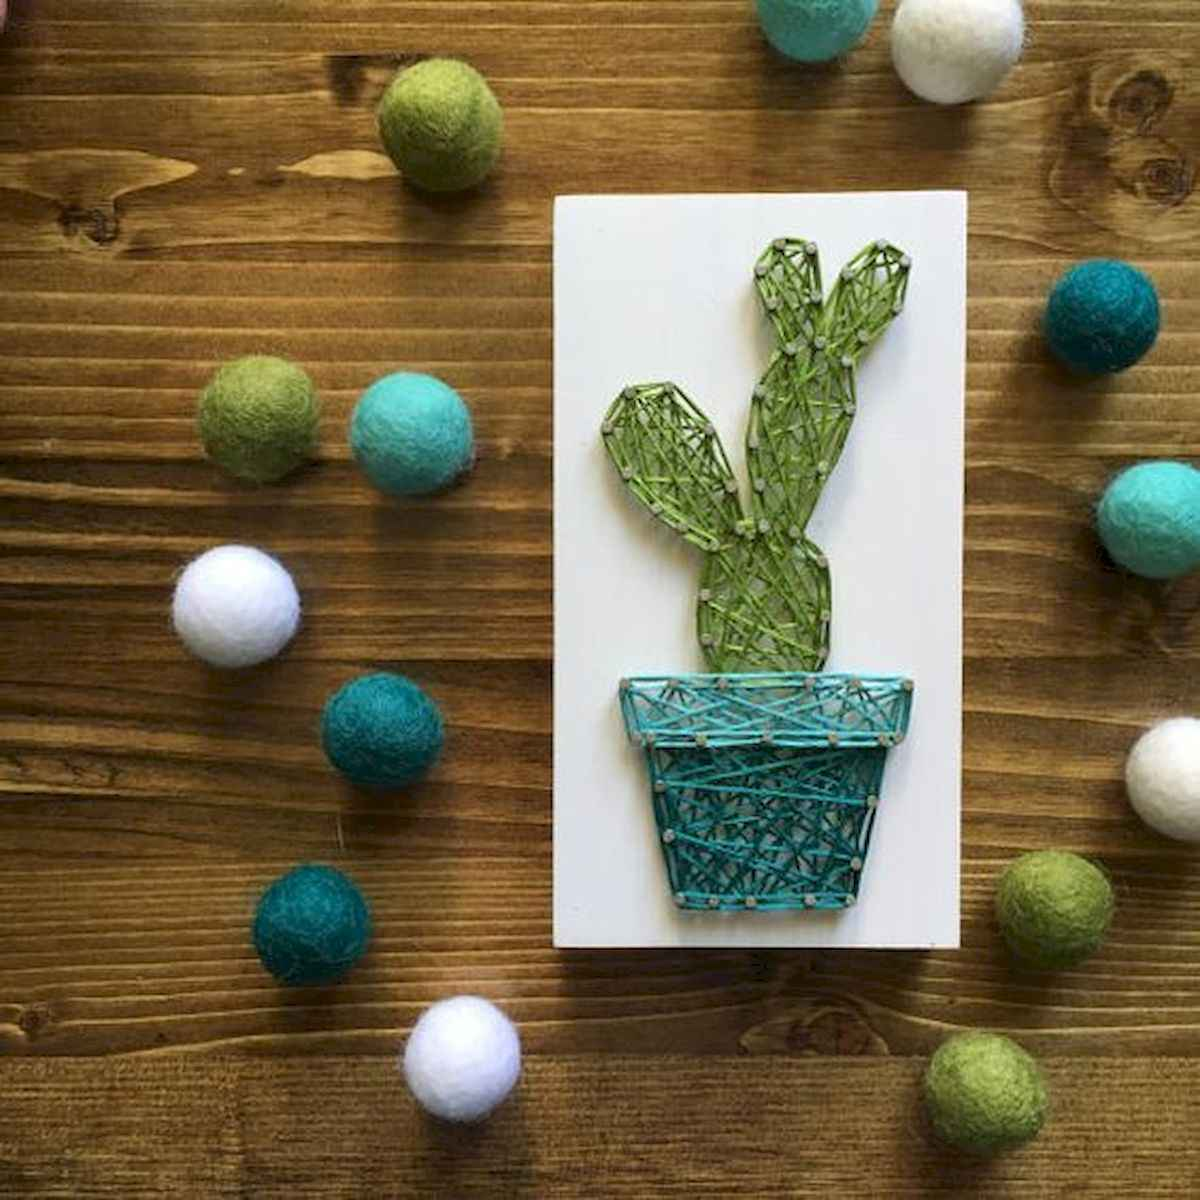 50 inspiring easy craft ideas for kids you must try (1)